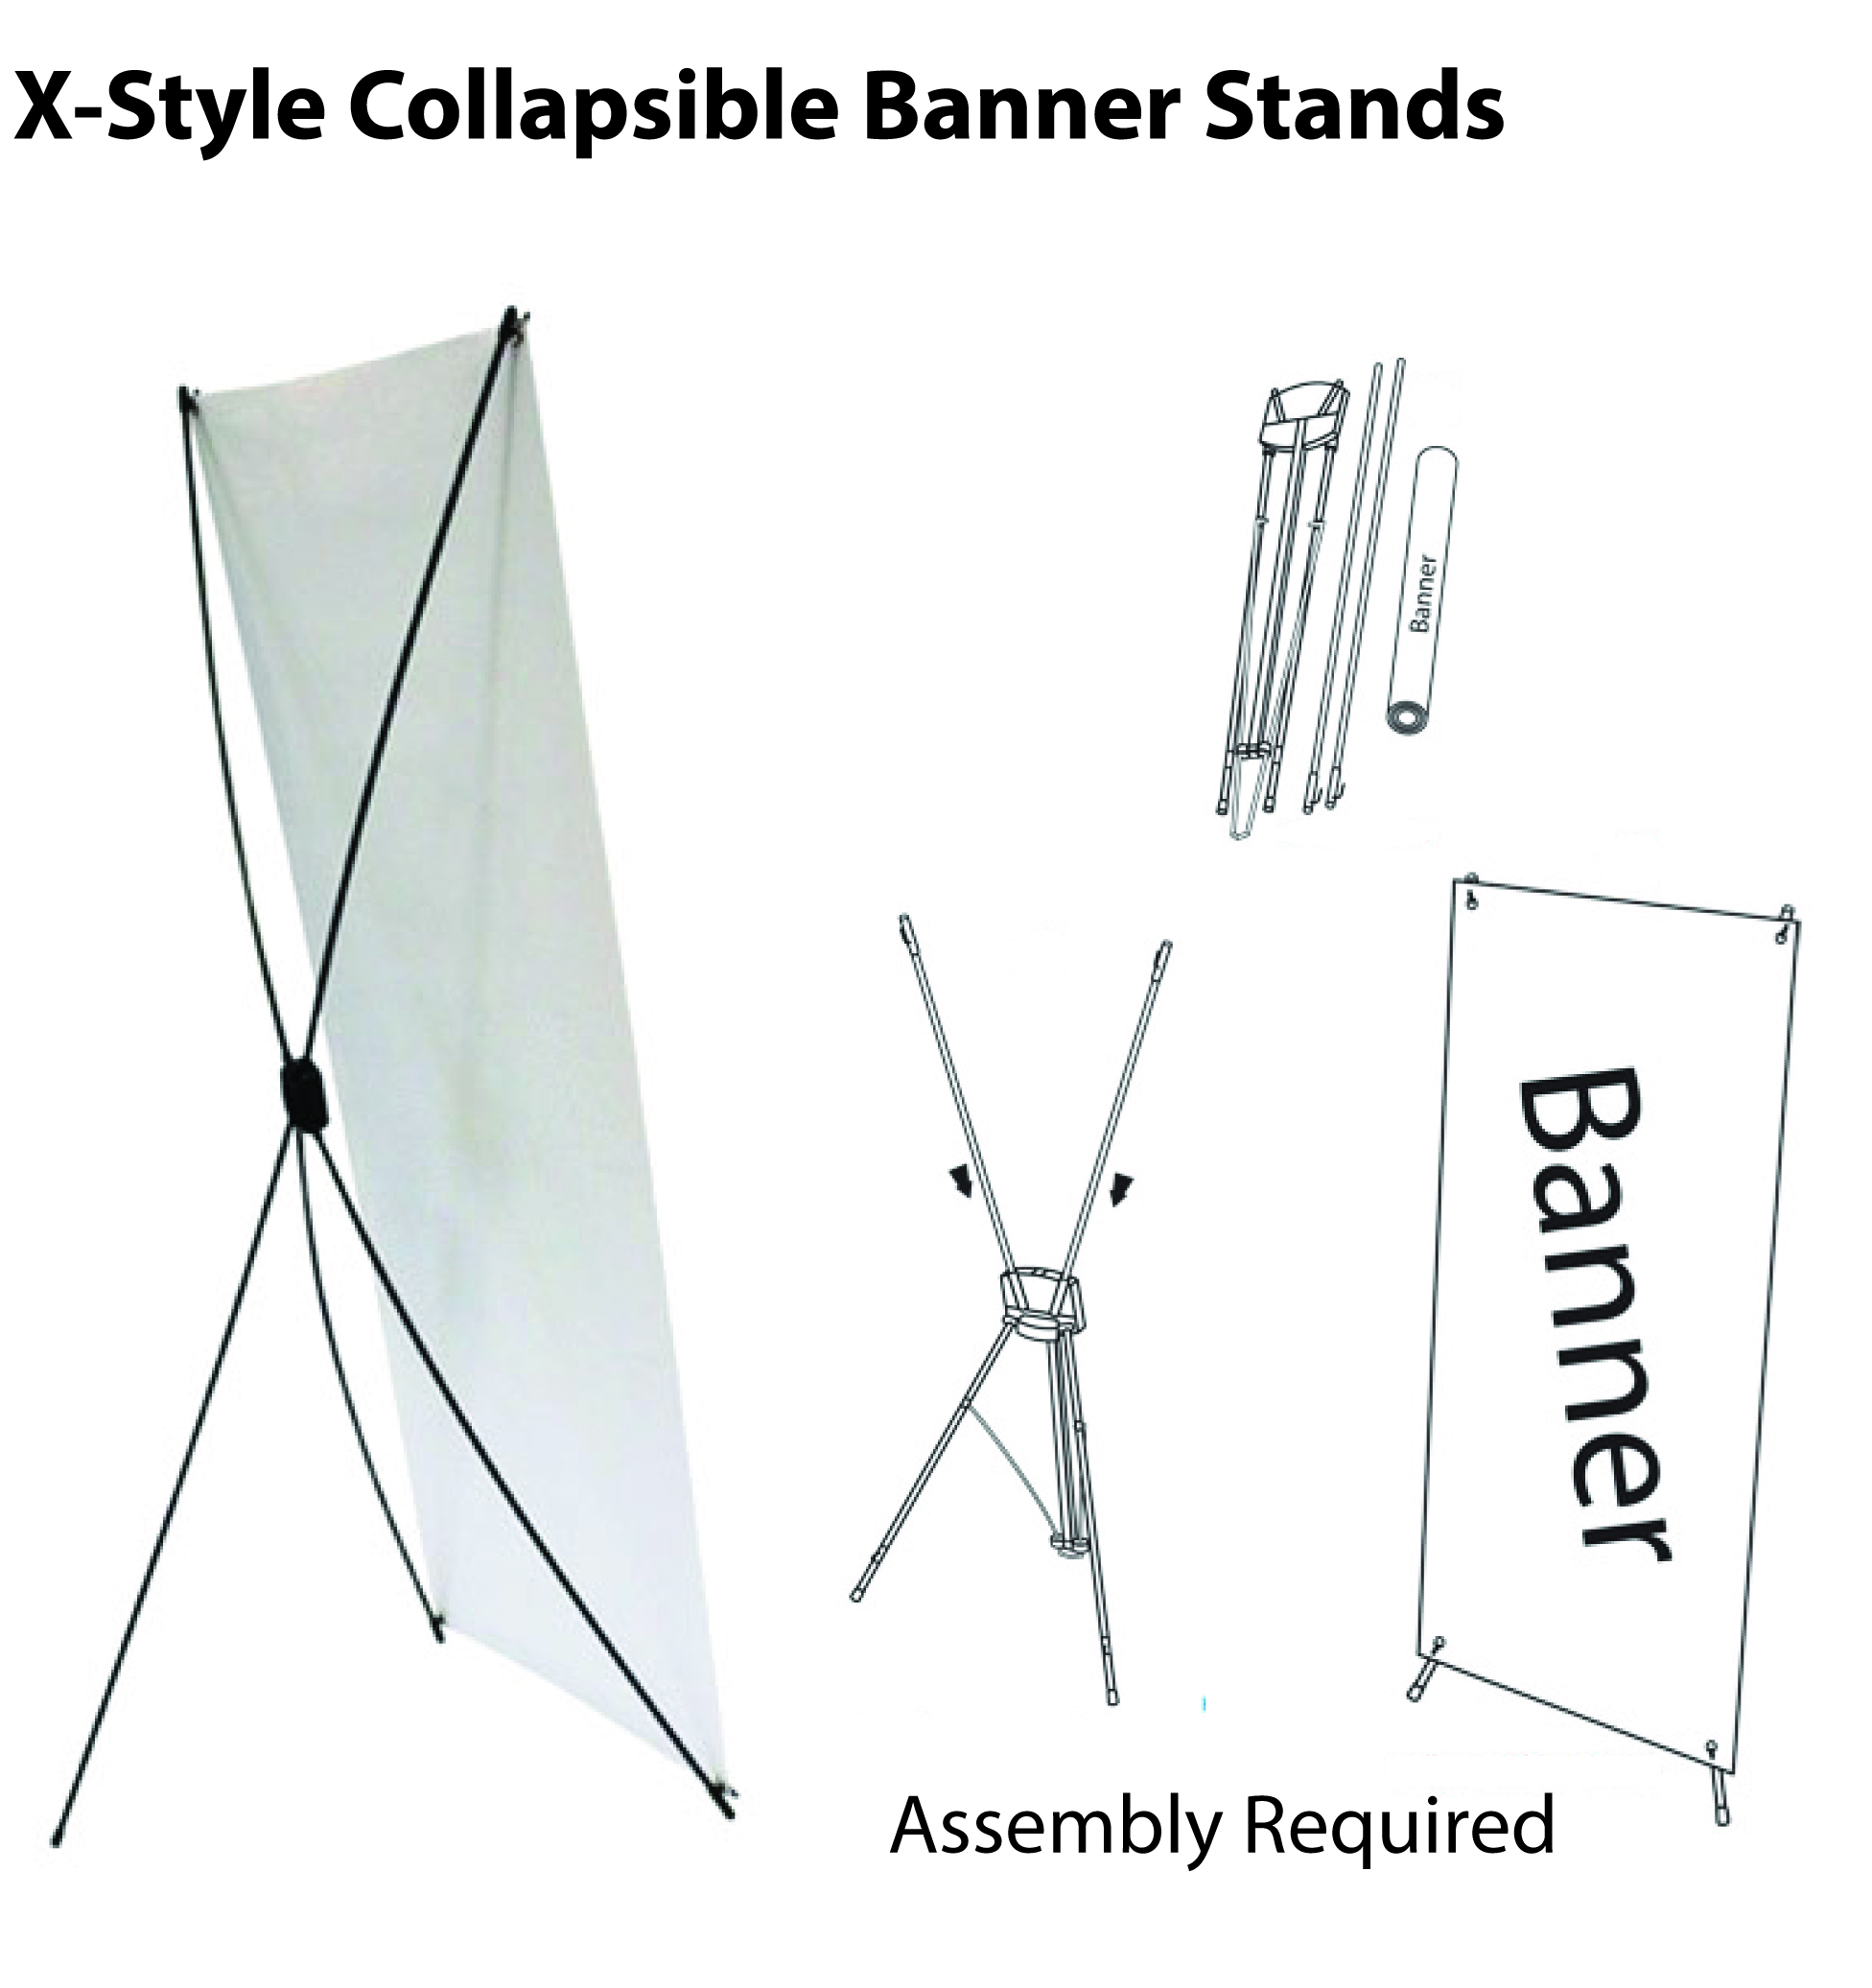 X-Style Collapsible Banner Stand